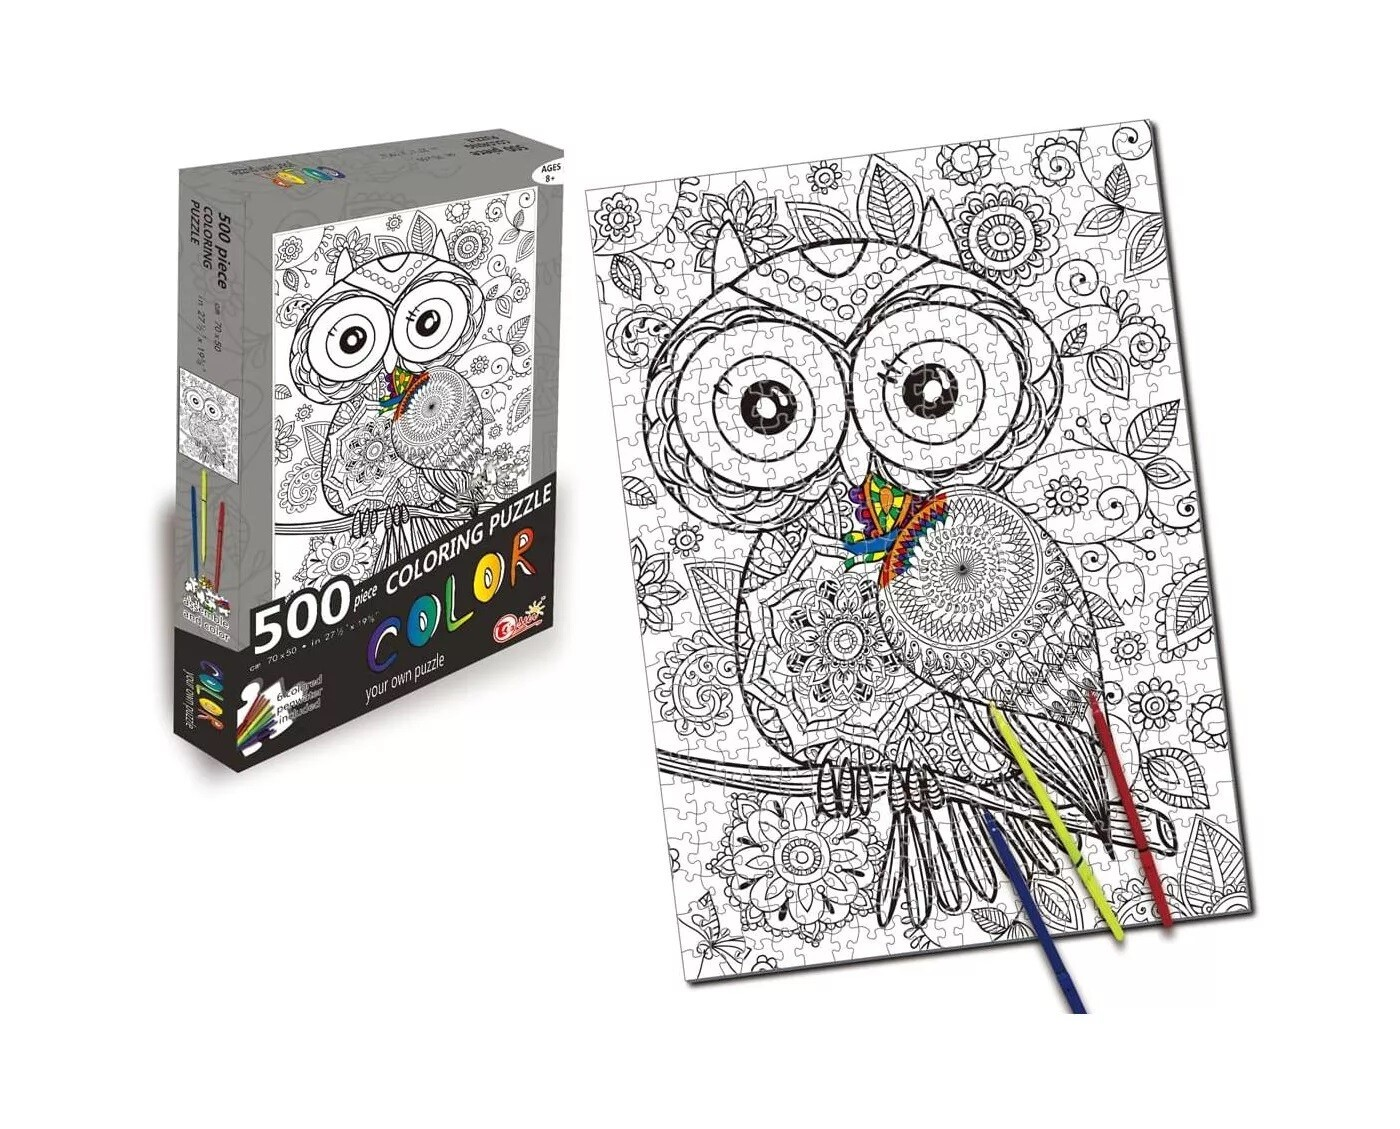 500 Piece Coloring Jigsaw Puzzle - Owl